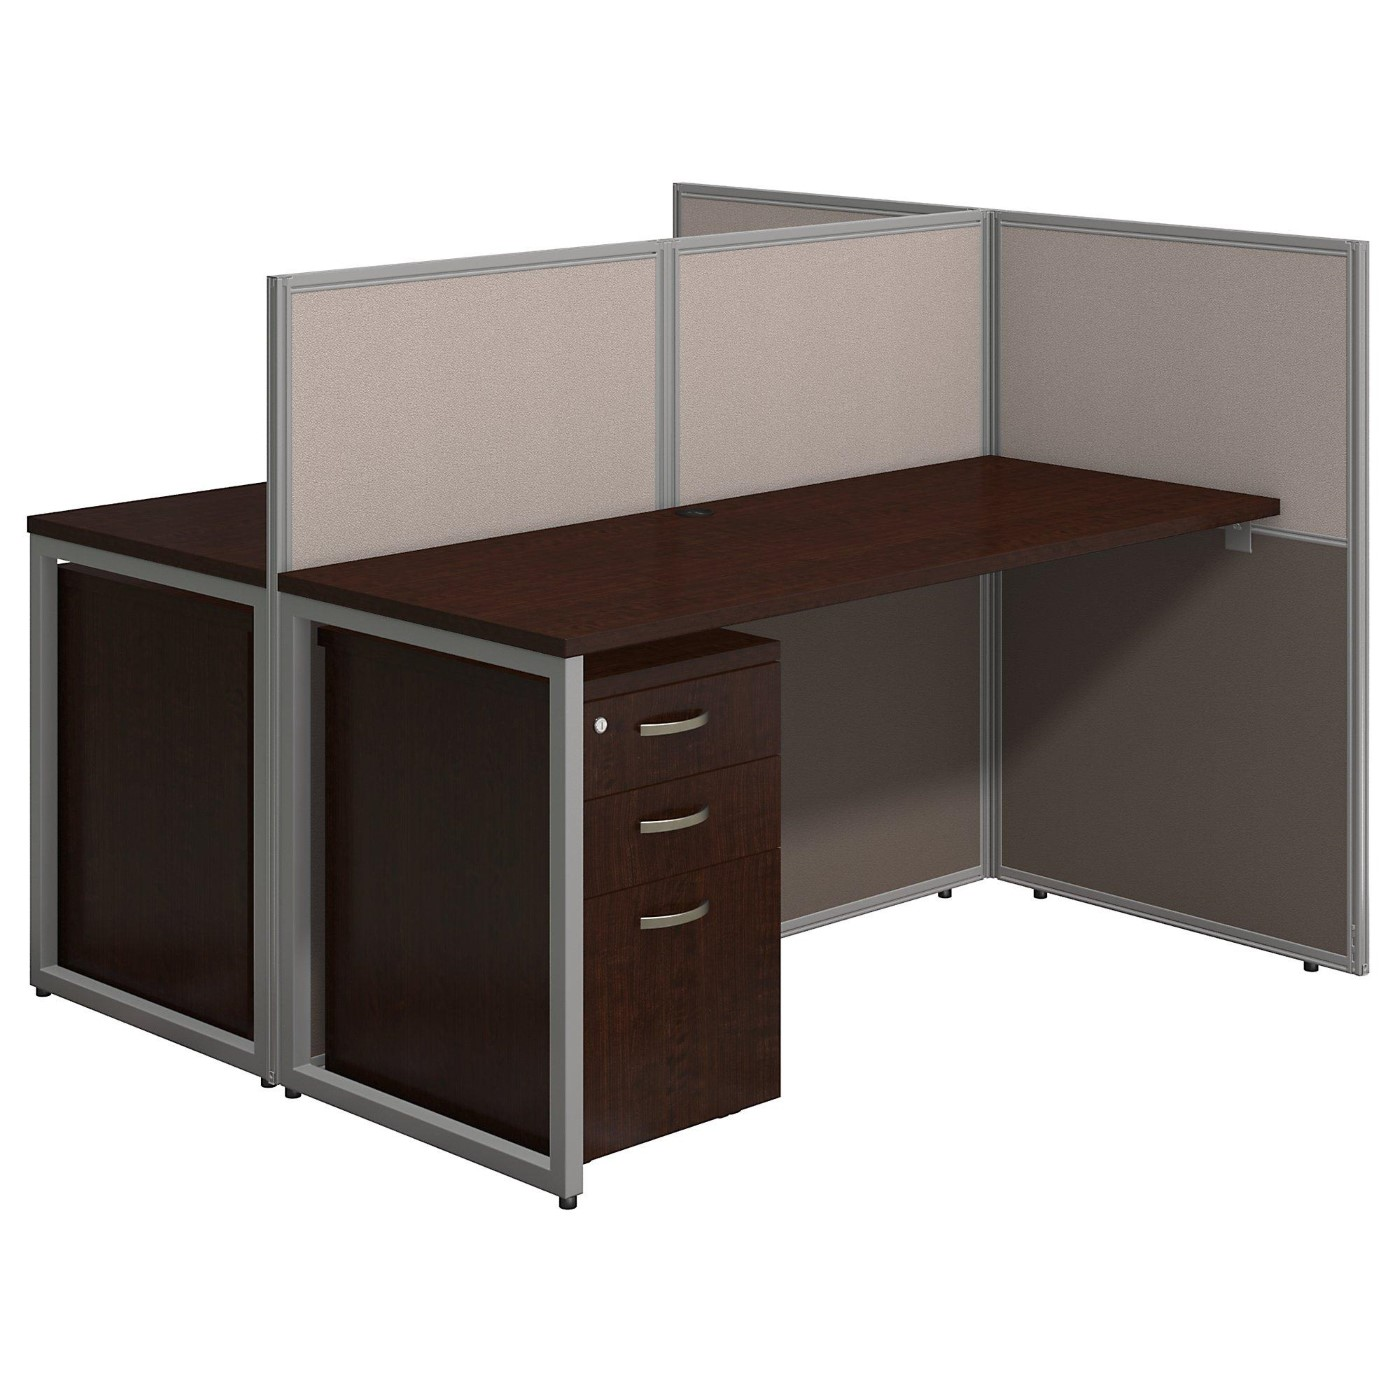 BUSH BUSINESS FURNITURE EASY OFFICE 60W TWO PERSON STRAIGHT DESK OPEN OFFICE WITH MOBILE FILE CABINETS. FREE SHIPPING.  SALE DEDUCT 10% MORE ENTER '10percent' IN COUPON CODE BOX WHILE CHECKING OUT. ENDS 5-31-20.